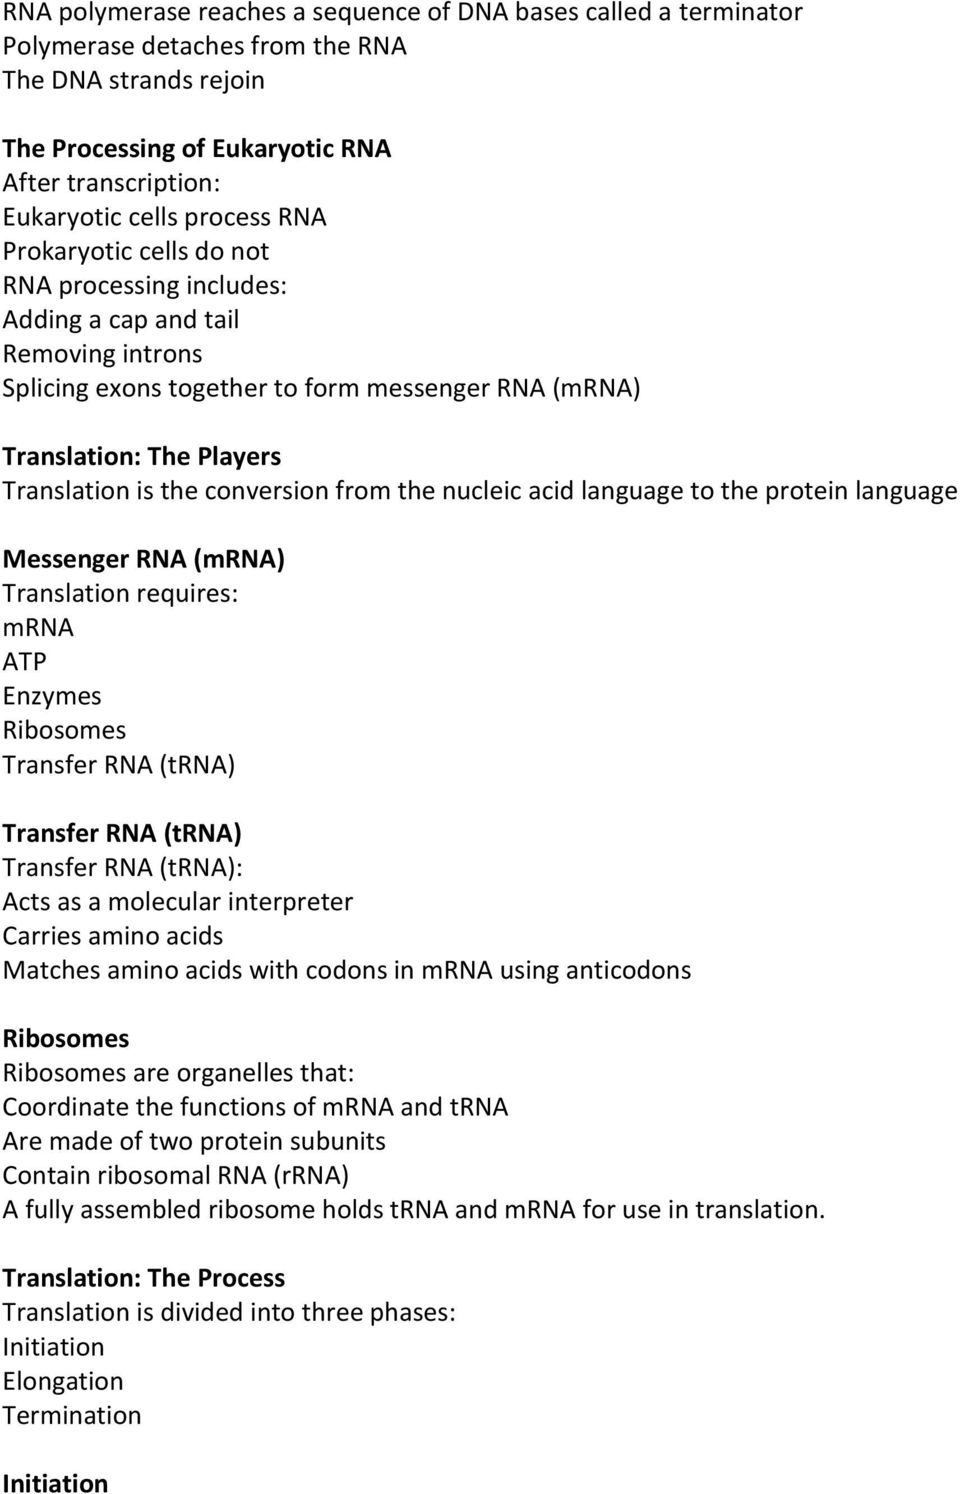 conversion from the nucleic acid language to the protein language Messenger RNA (mrna) Translation requires: mrna ATP Enzymes Ribosomes Transfer RNA (trna) Transfer RNA (trna) Transfer RNA (trna):